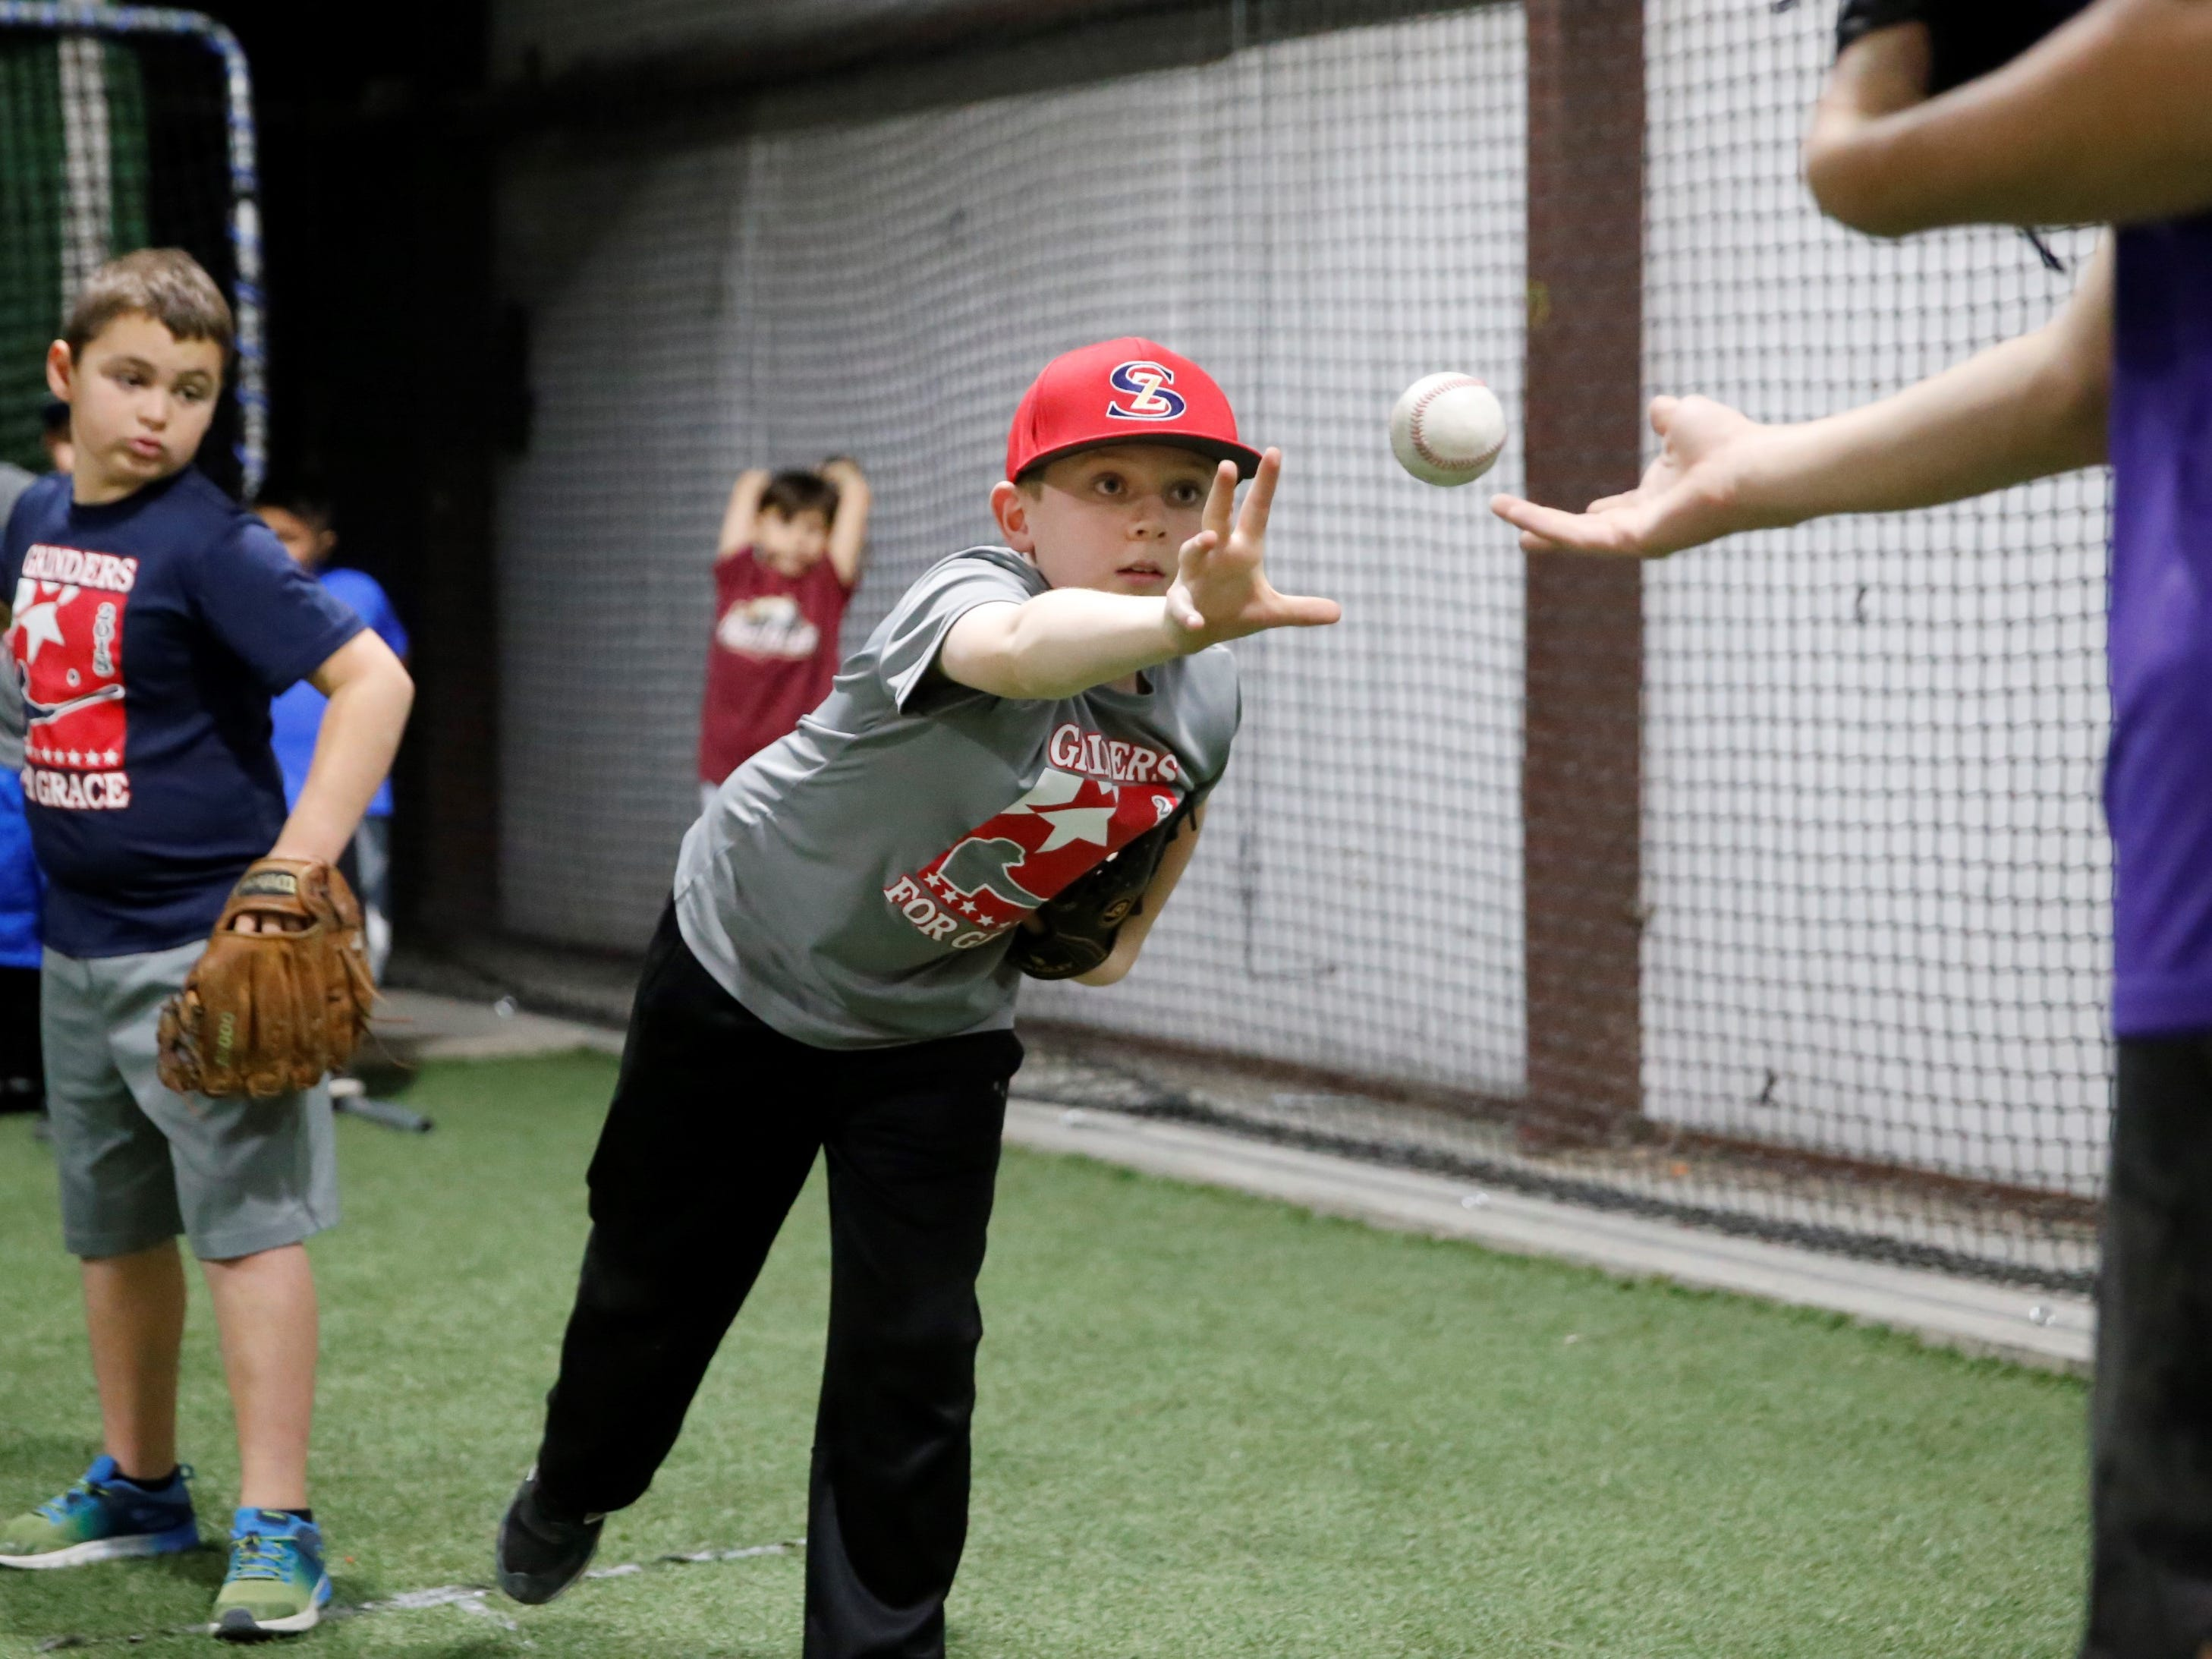 Logan Rowland of Farmington works on his balance during pitching drills at the fourth annual Grinders for Grace baseball camp Saturday at the Strike Zone training facility in Farmington.